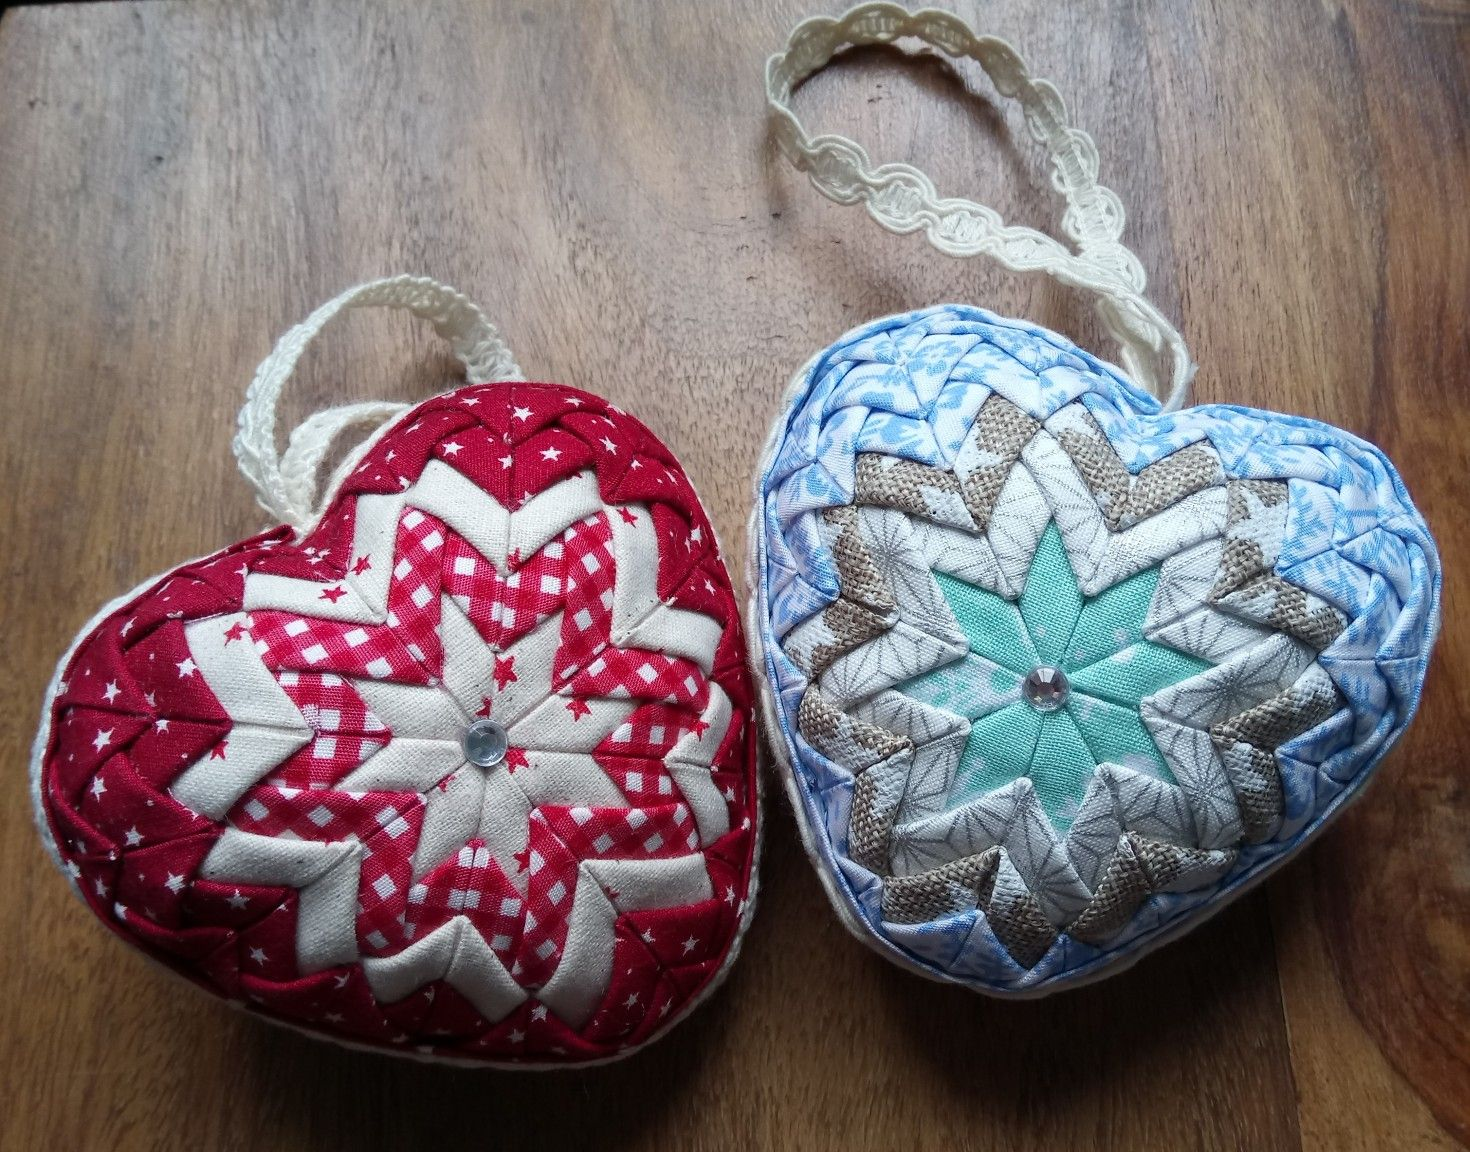 Heart Shaped Quilted Baubles Fabric Christmas Ornaments Fabric Ornaments Folded Fabric Ornaments